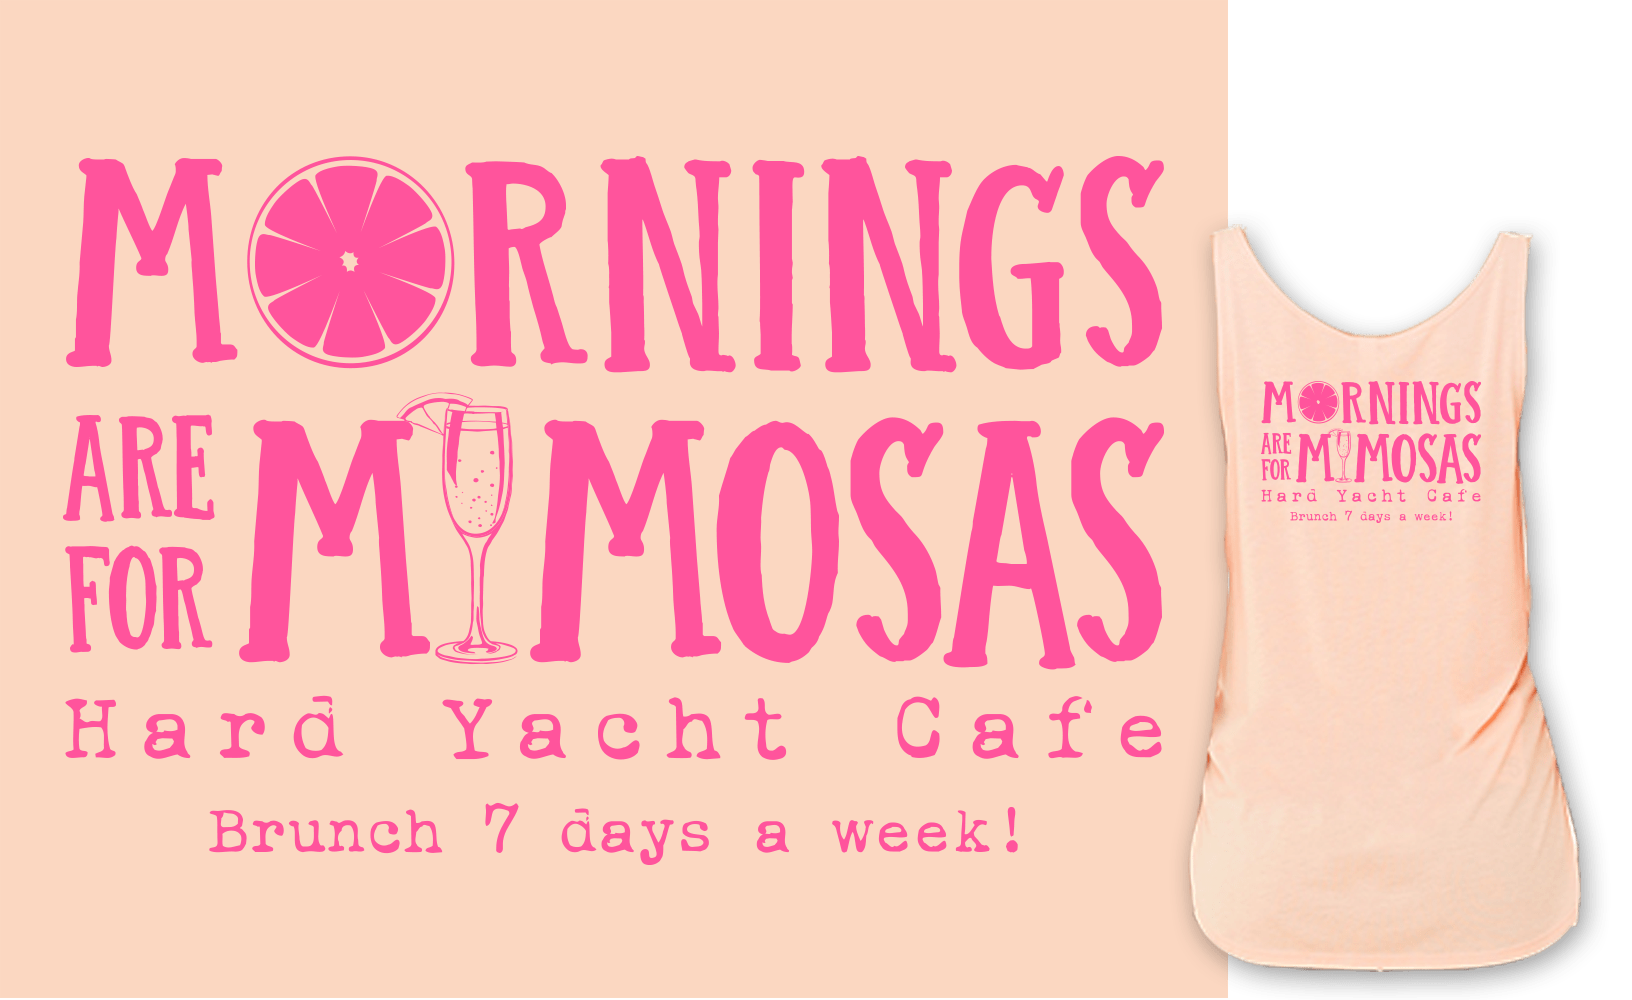 Morning are For Mimosas Hard Yacht Cafe tank top